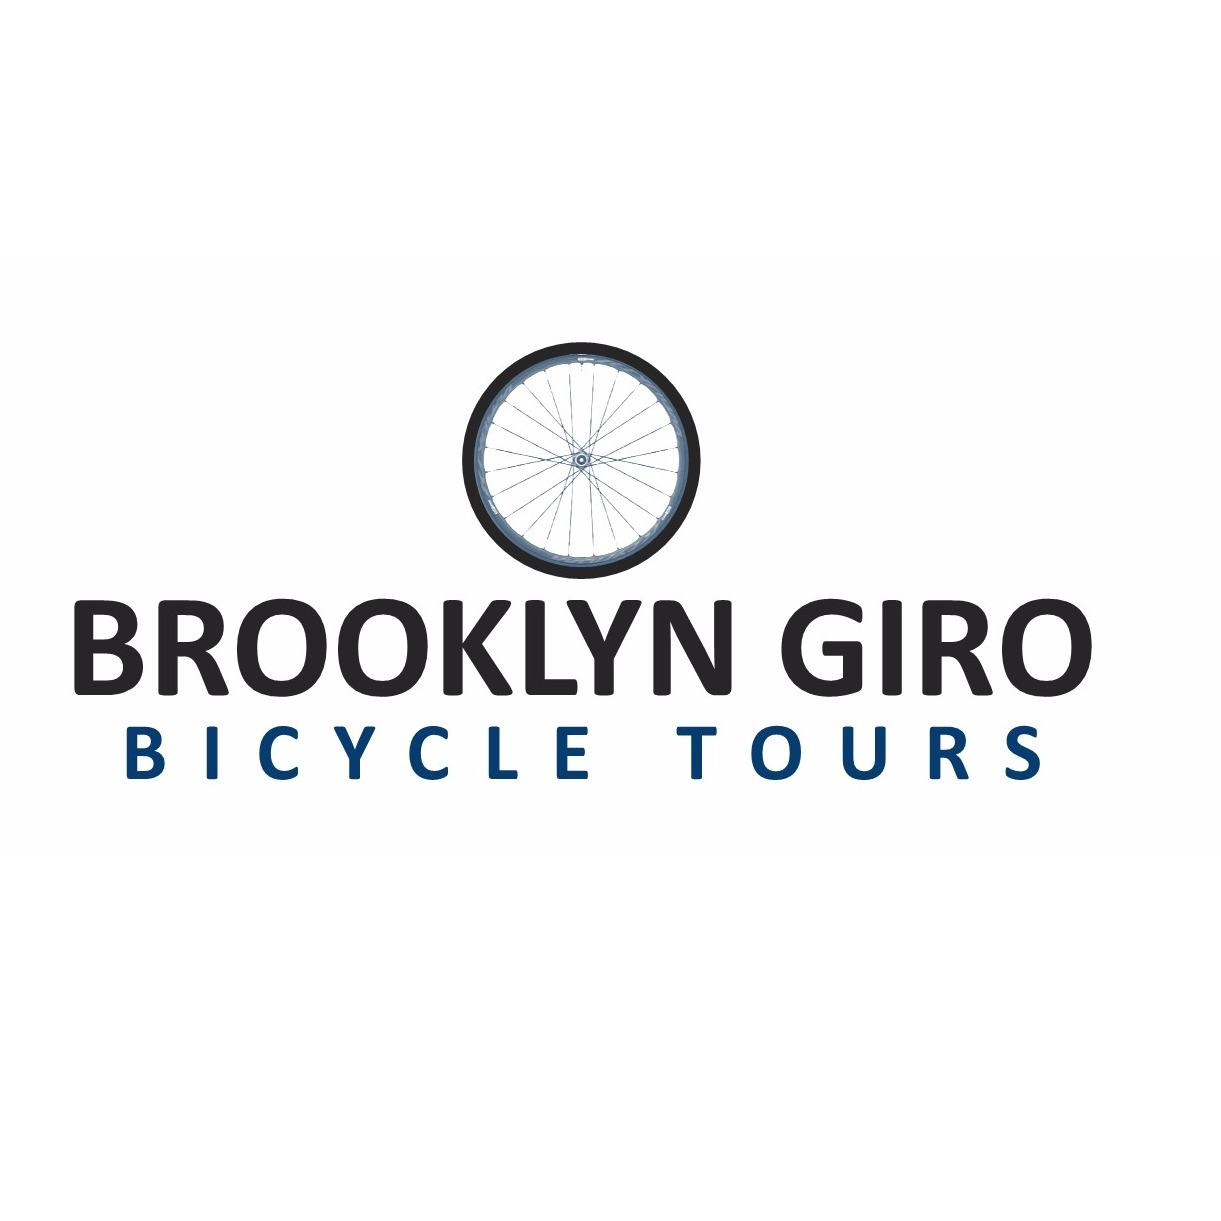 Brooklyn Giro Bike Tours - Brooklyn, NY - Museums & Attractions